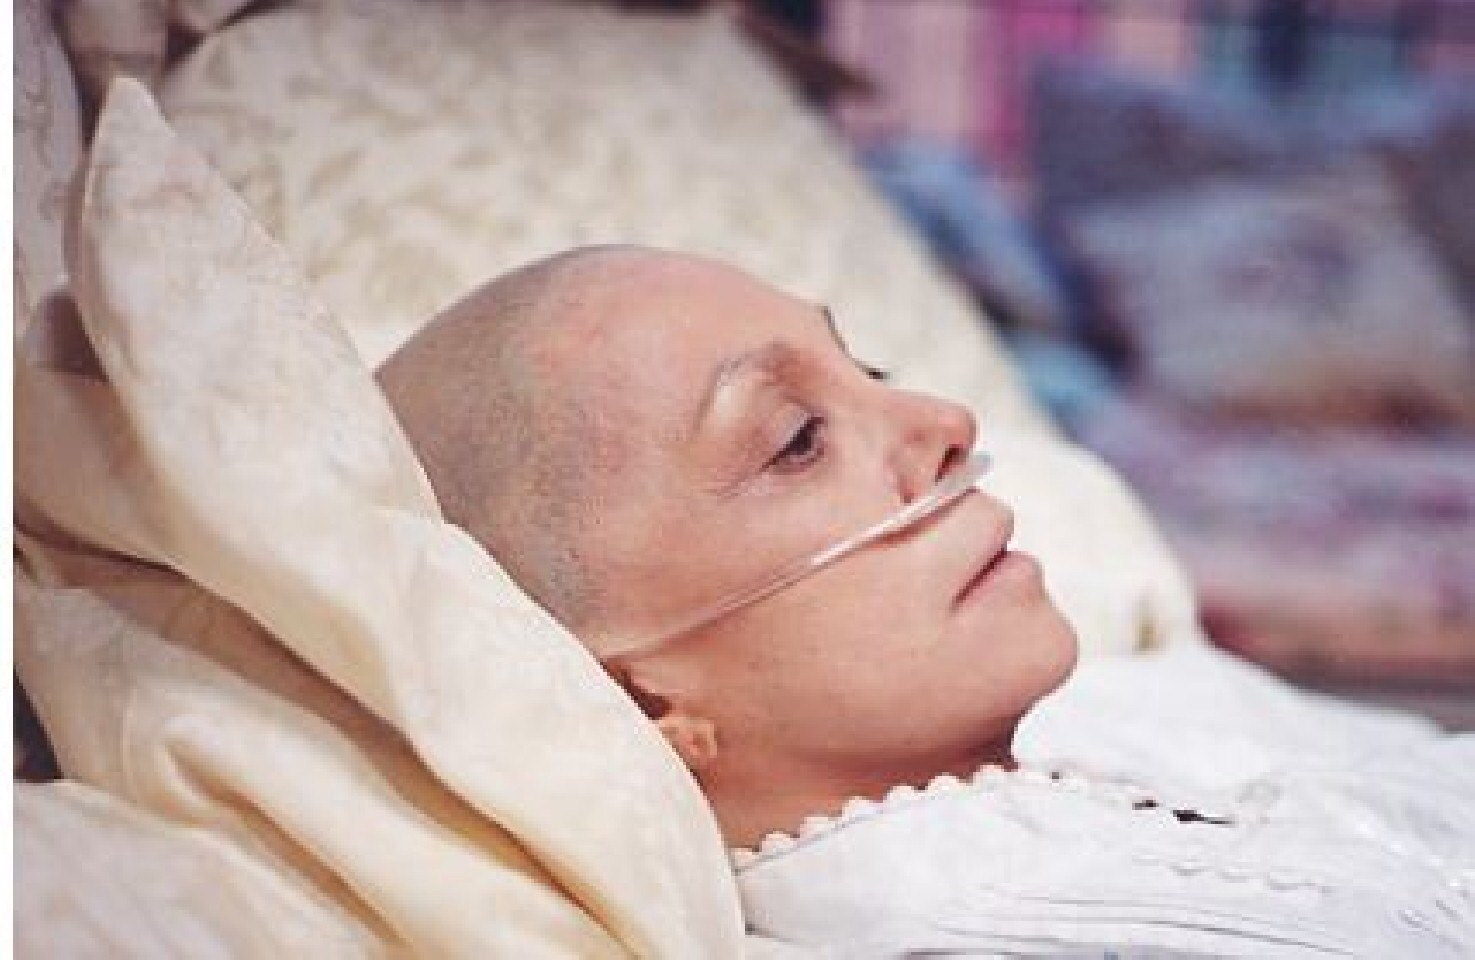 Just in case you missed it, this cancer study is terrifying